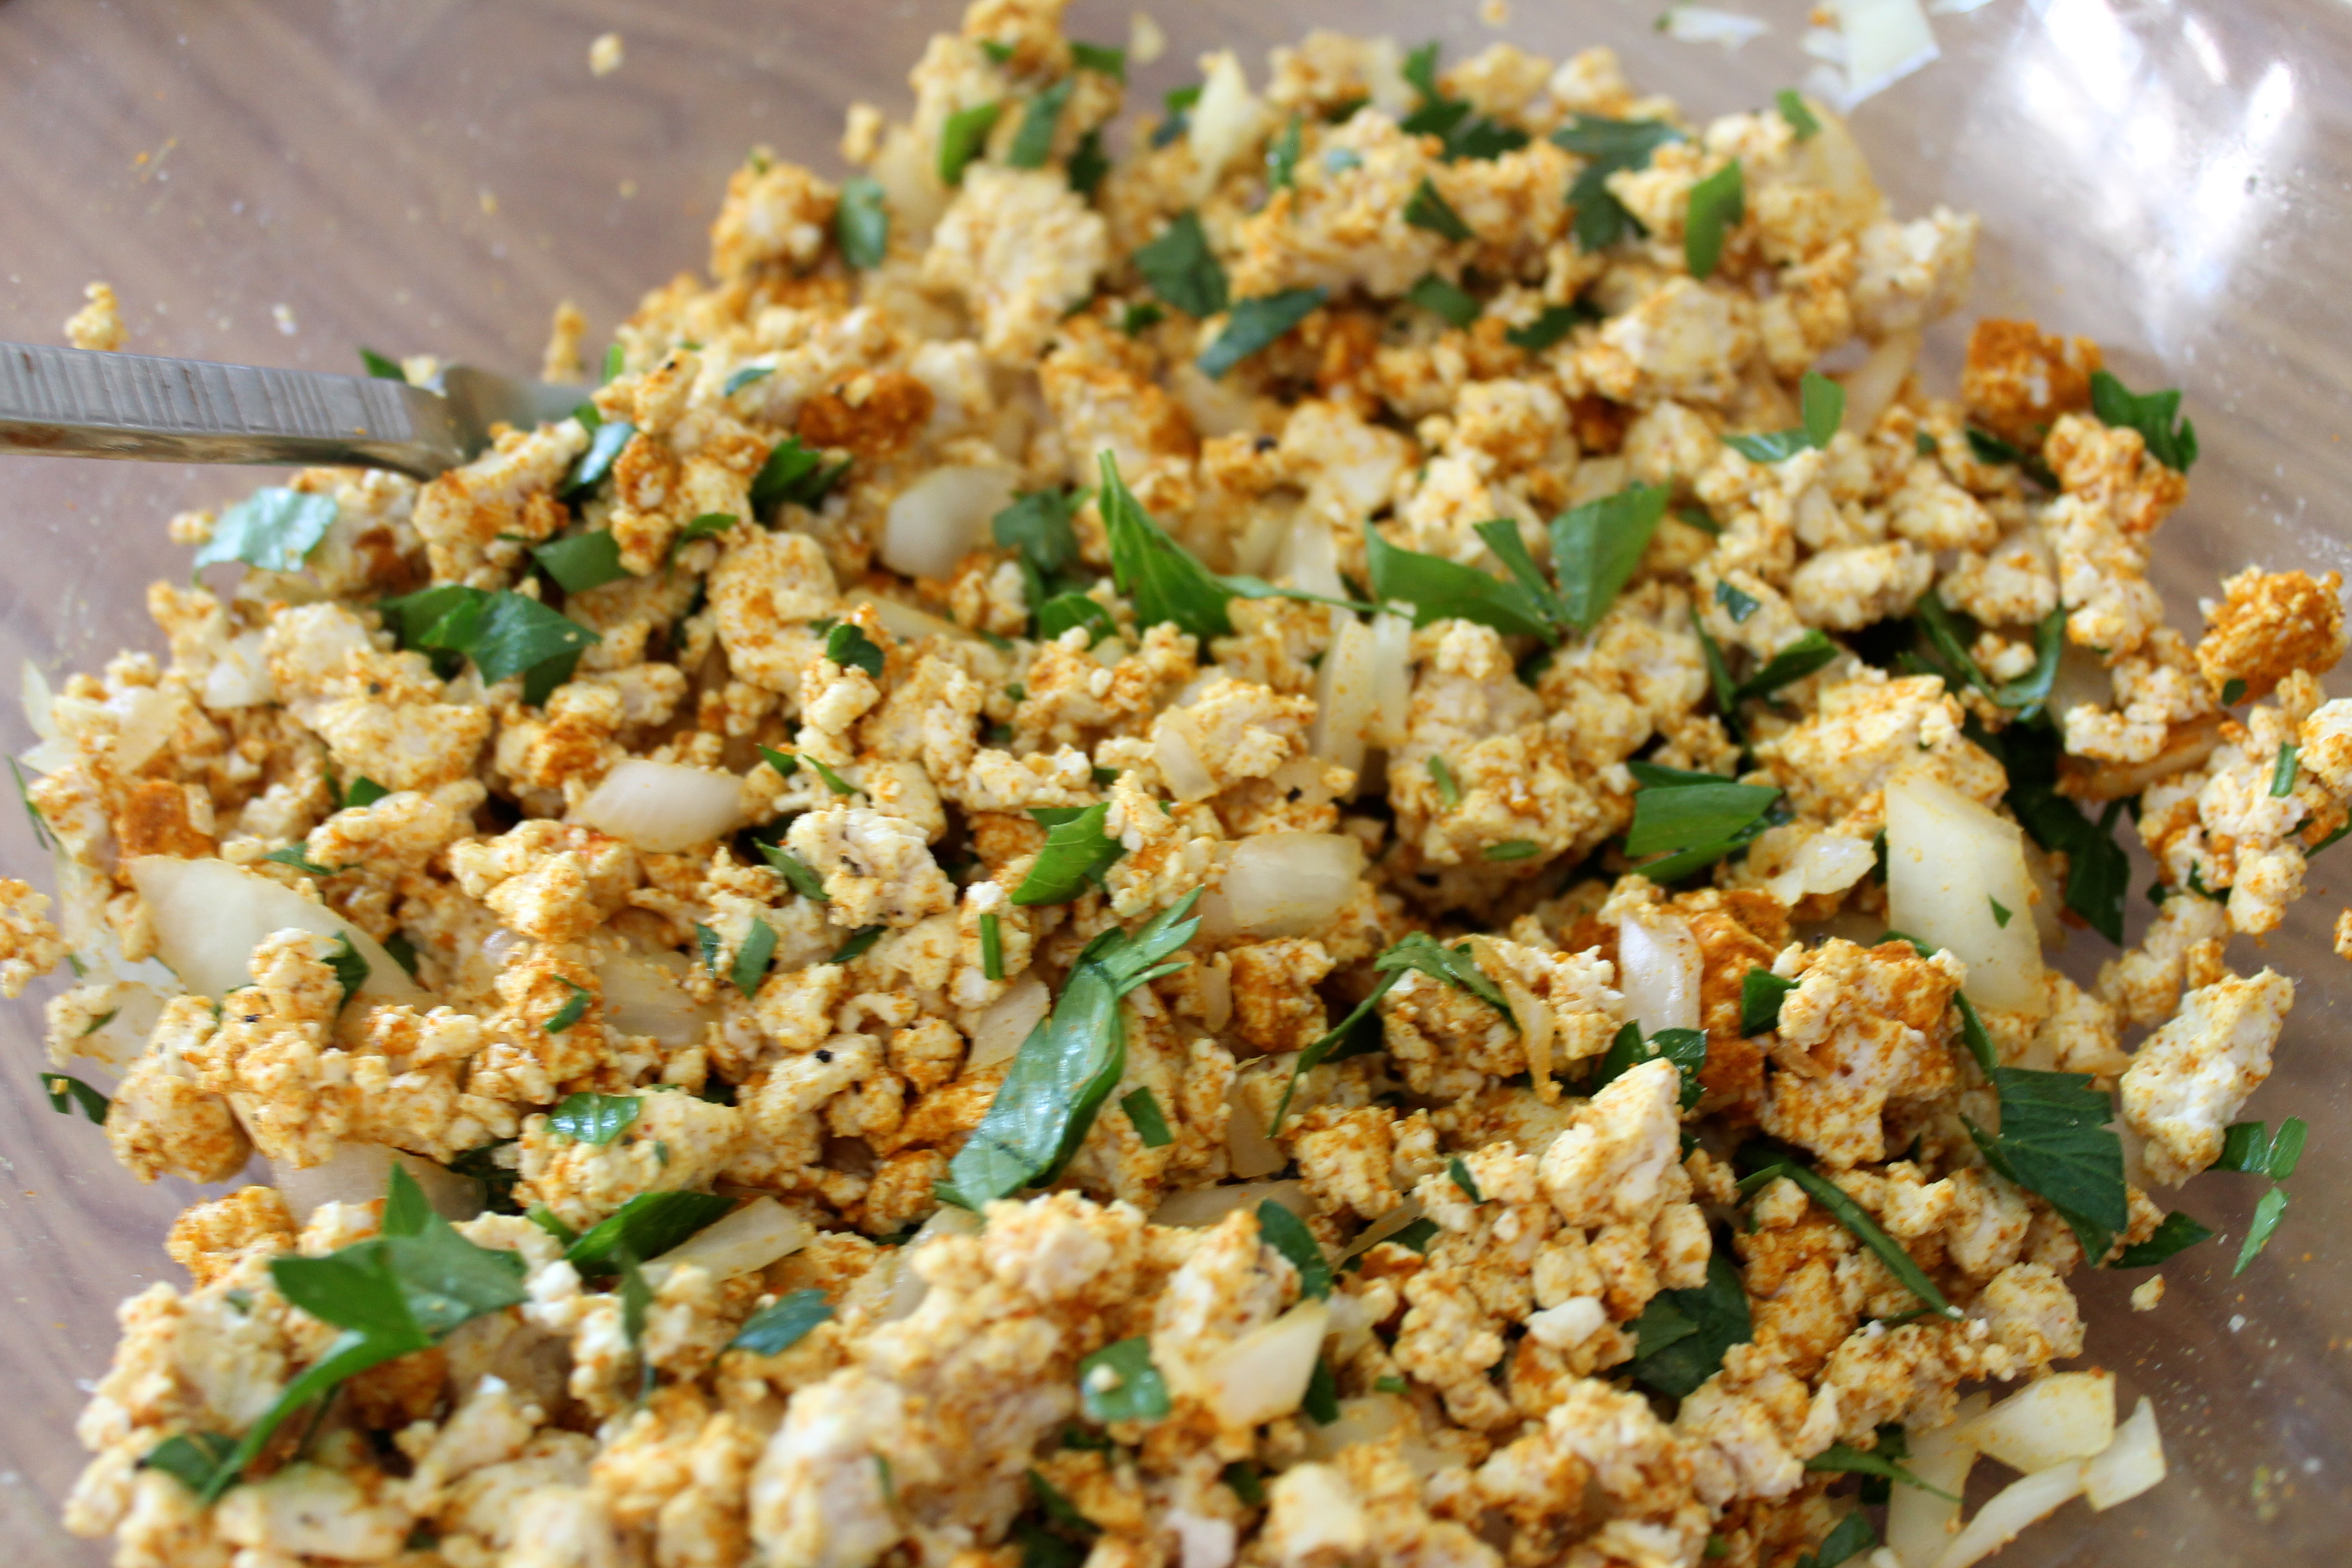 Meatless Monday: Curried Tofu 'Egg' Salad – For the Love of Food